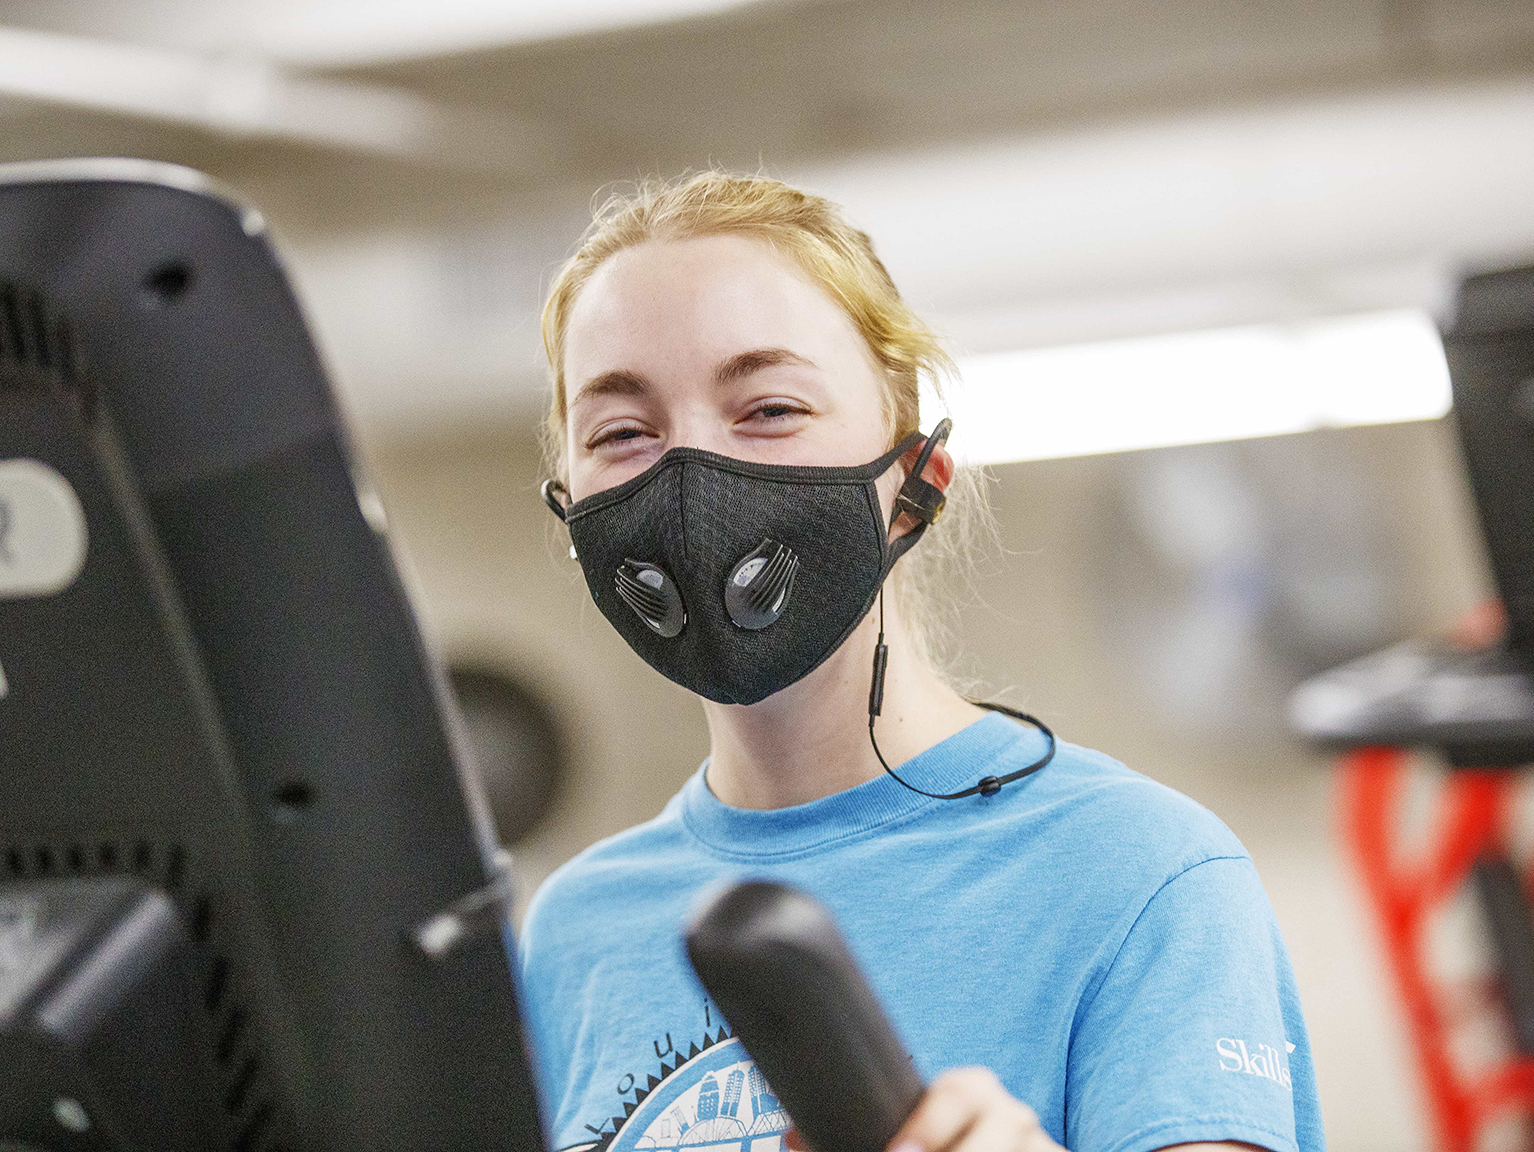 A student wears a black face covering while exercising in the Campus Rec Center's strength training & conditioning room.